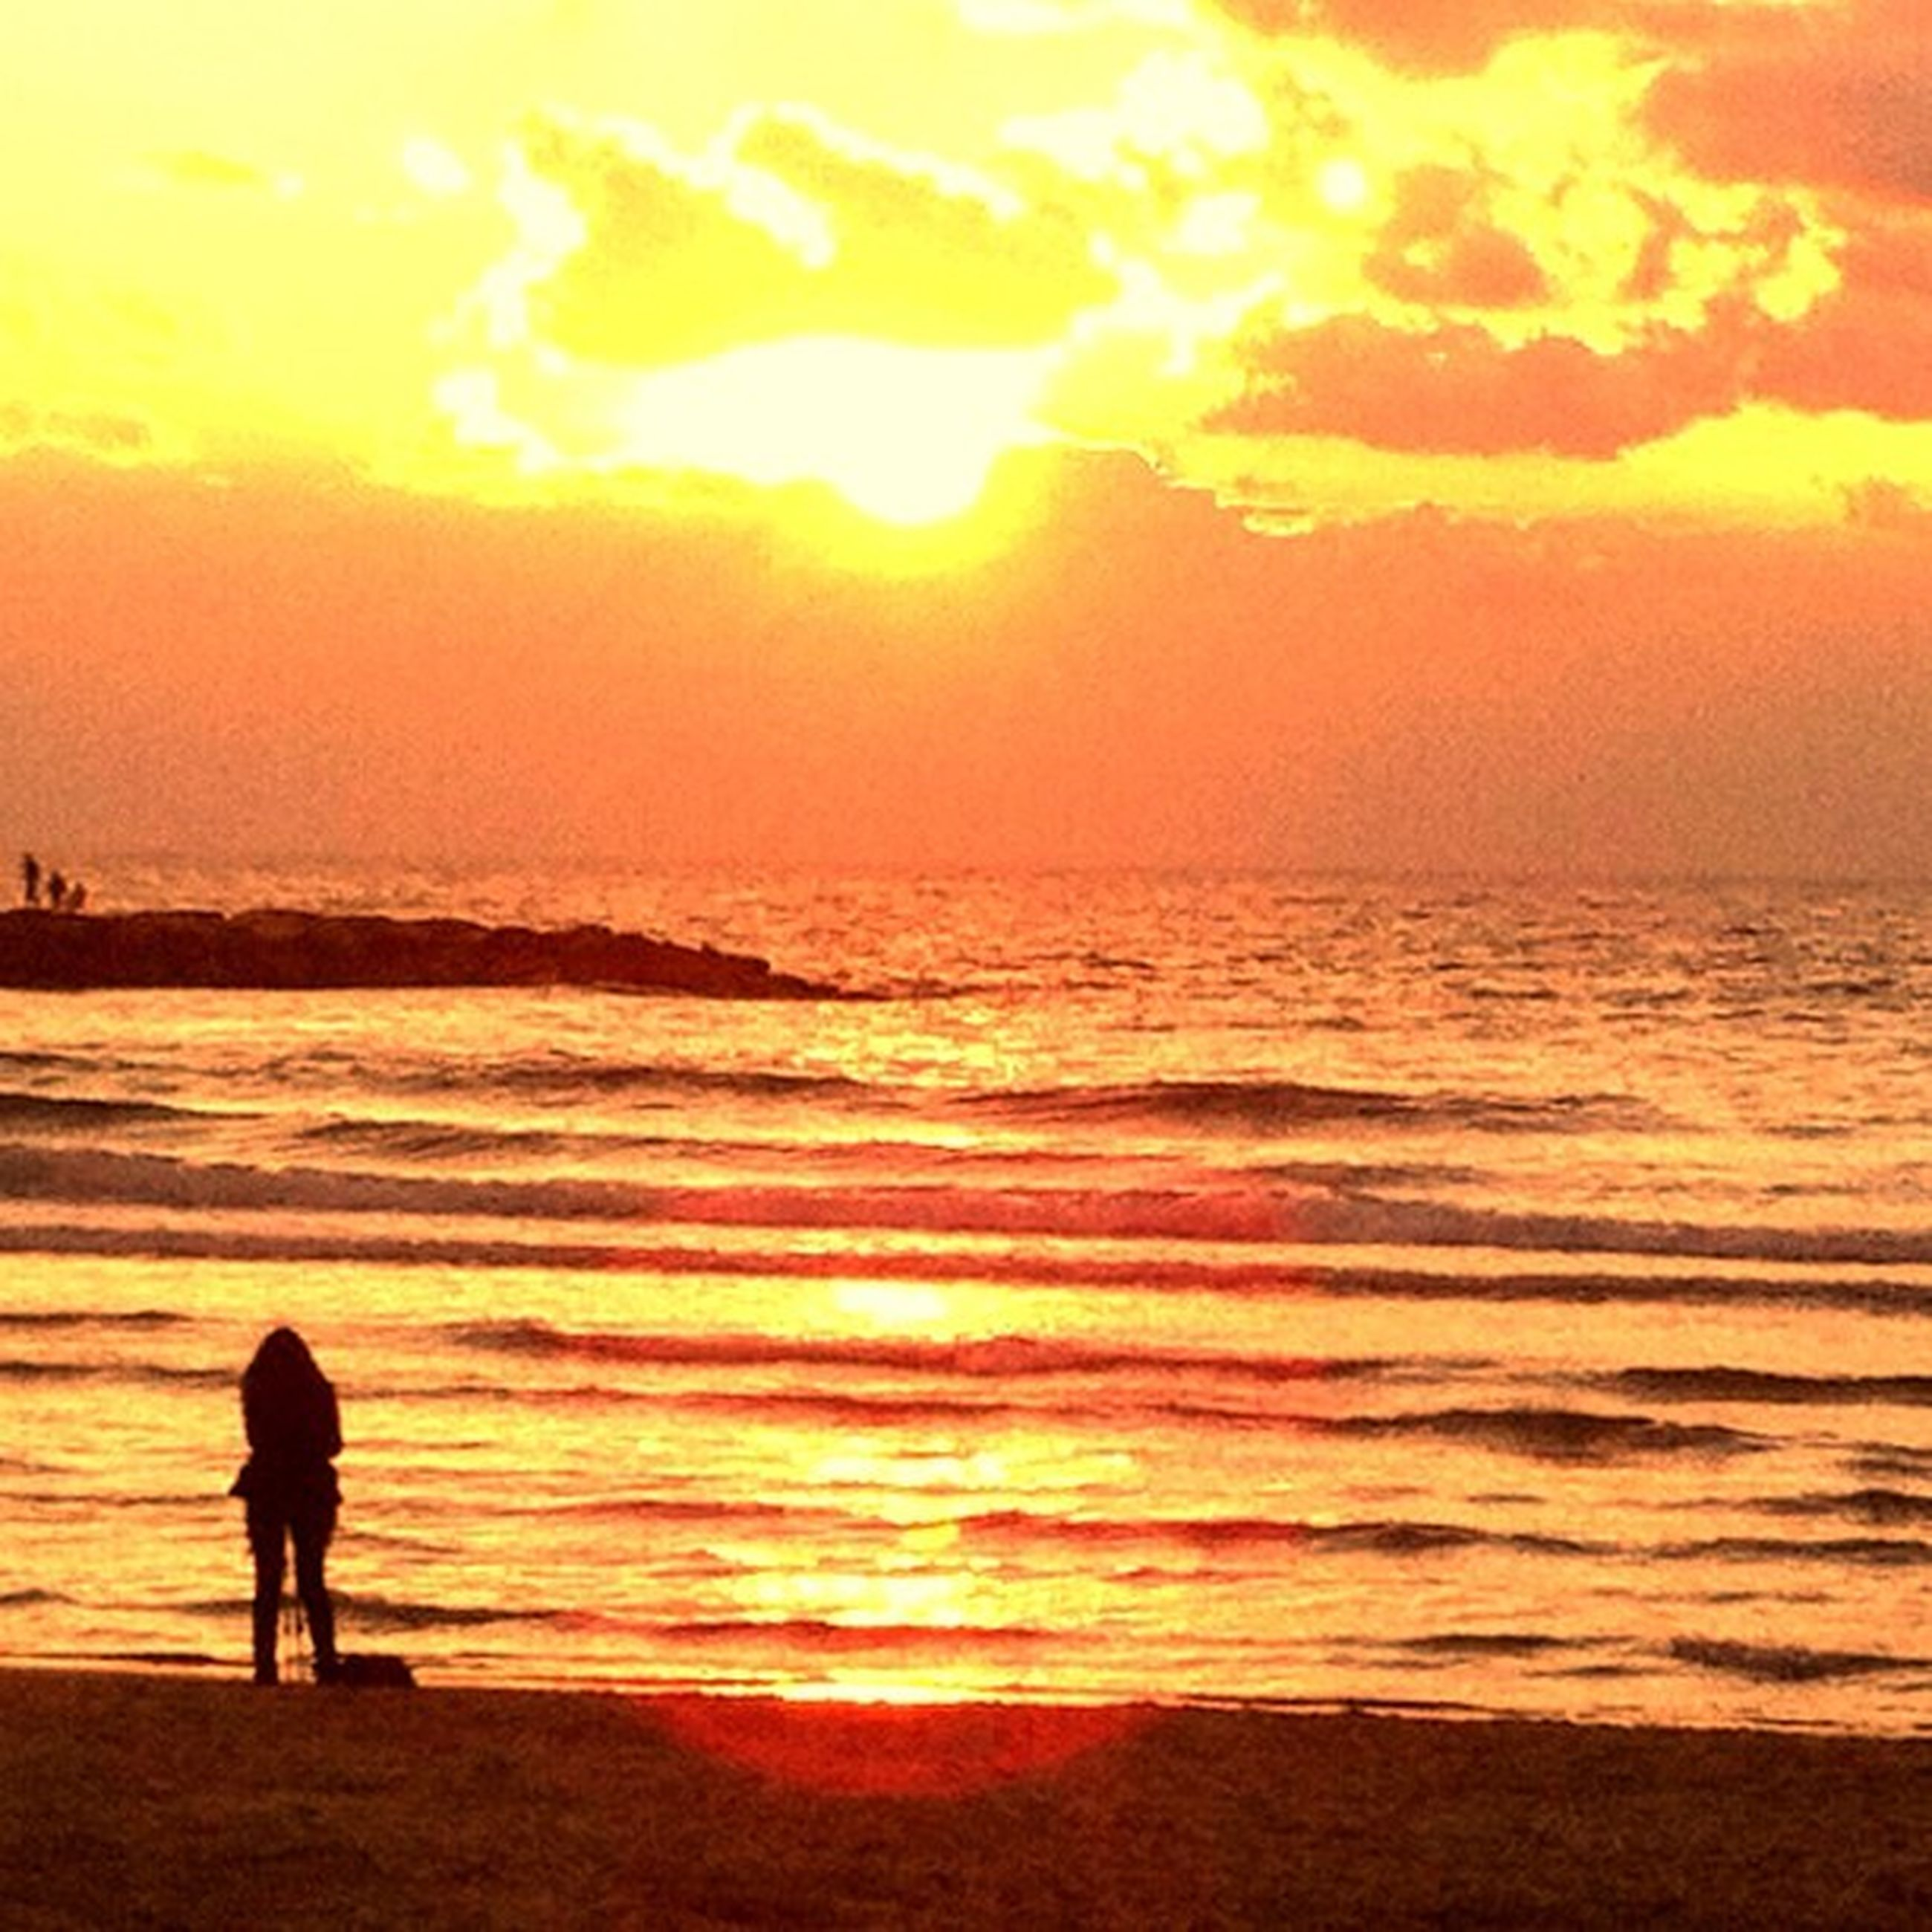 sunset, sea, beach, water, silhouette, orange color, horizon over water, sky, sun, scenics, lifestyles, beauty in nature, leisure activity, shore, tranquil scene, men, tranquility, standing